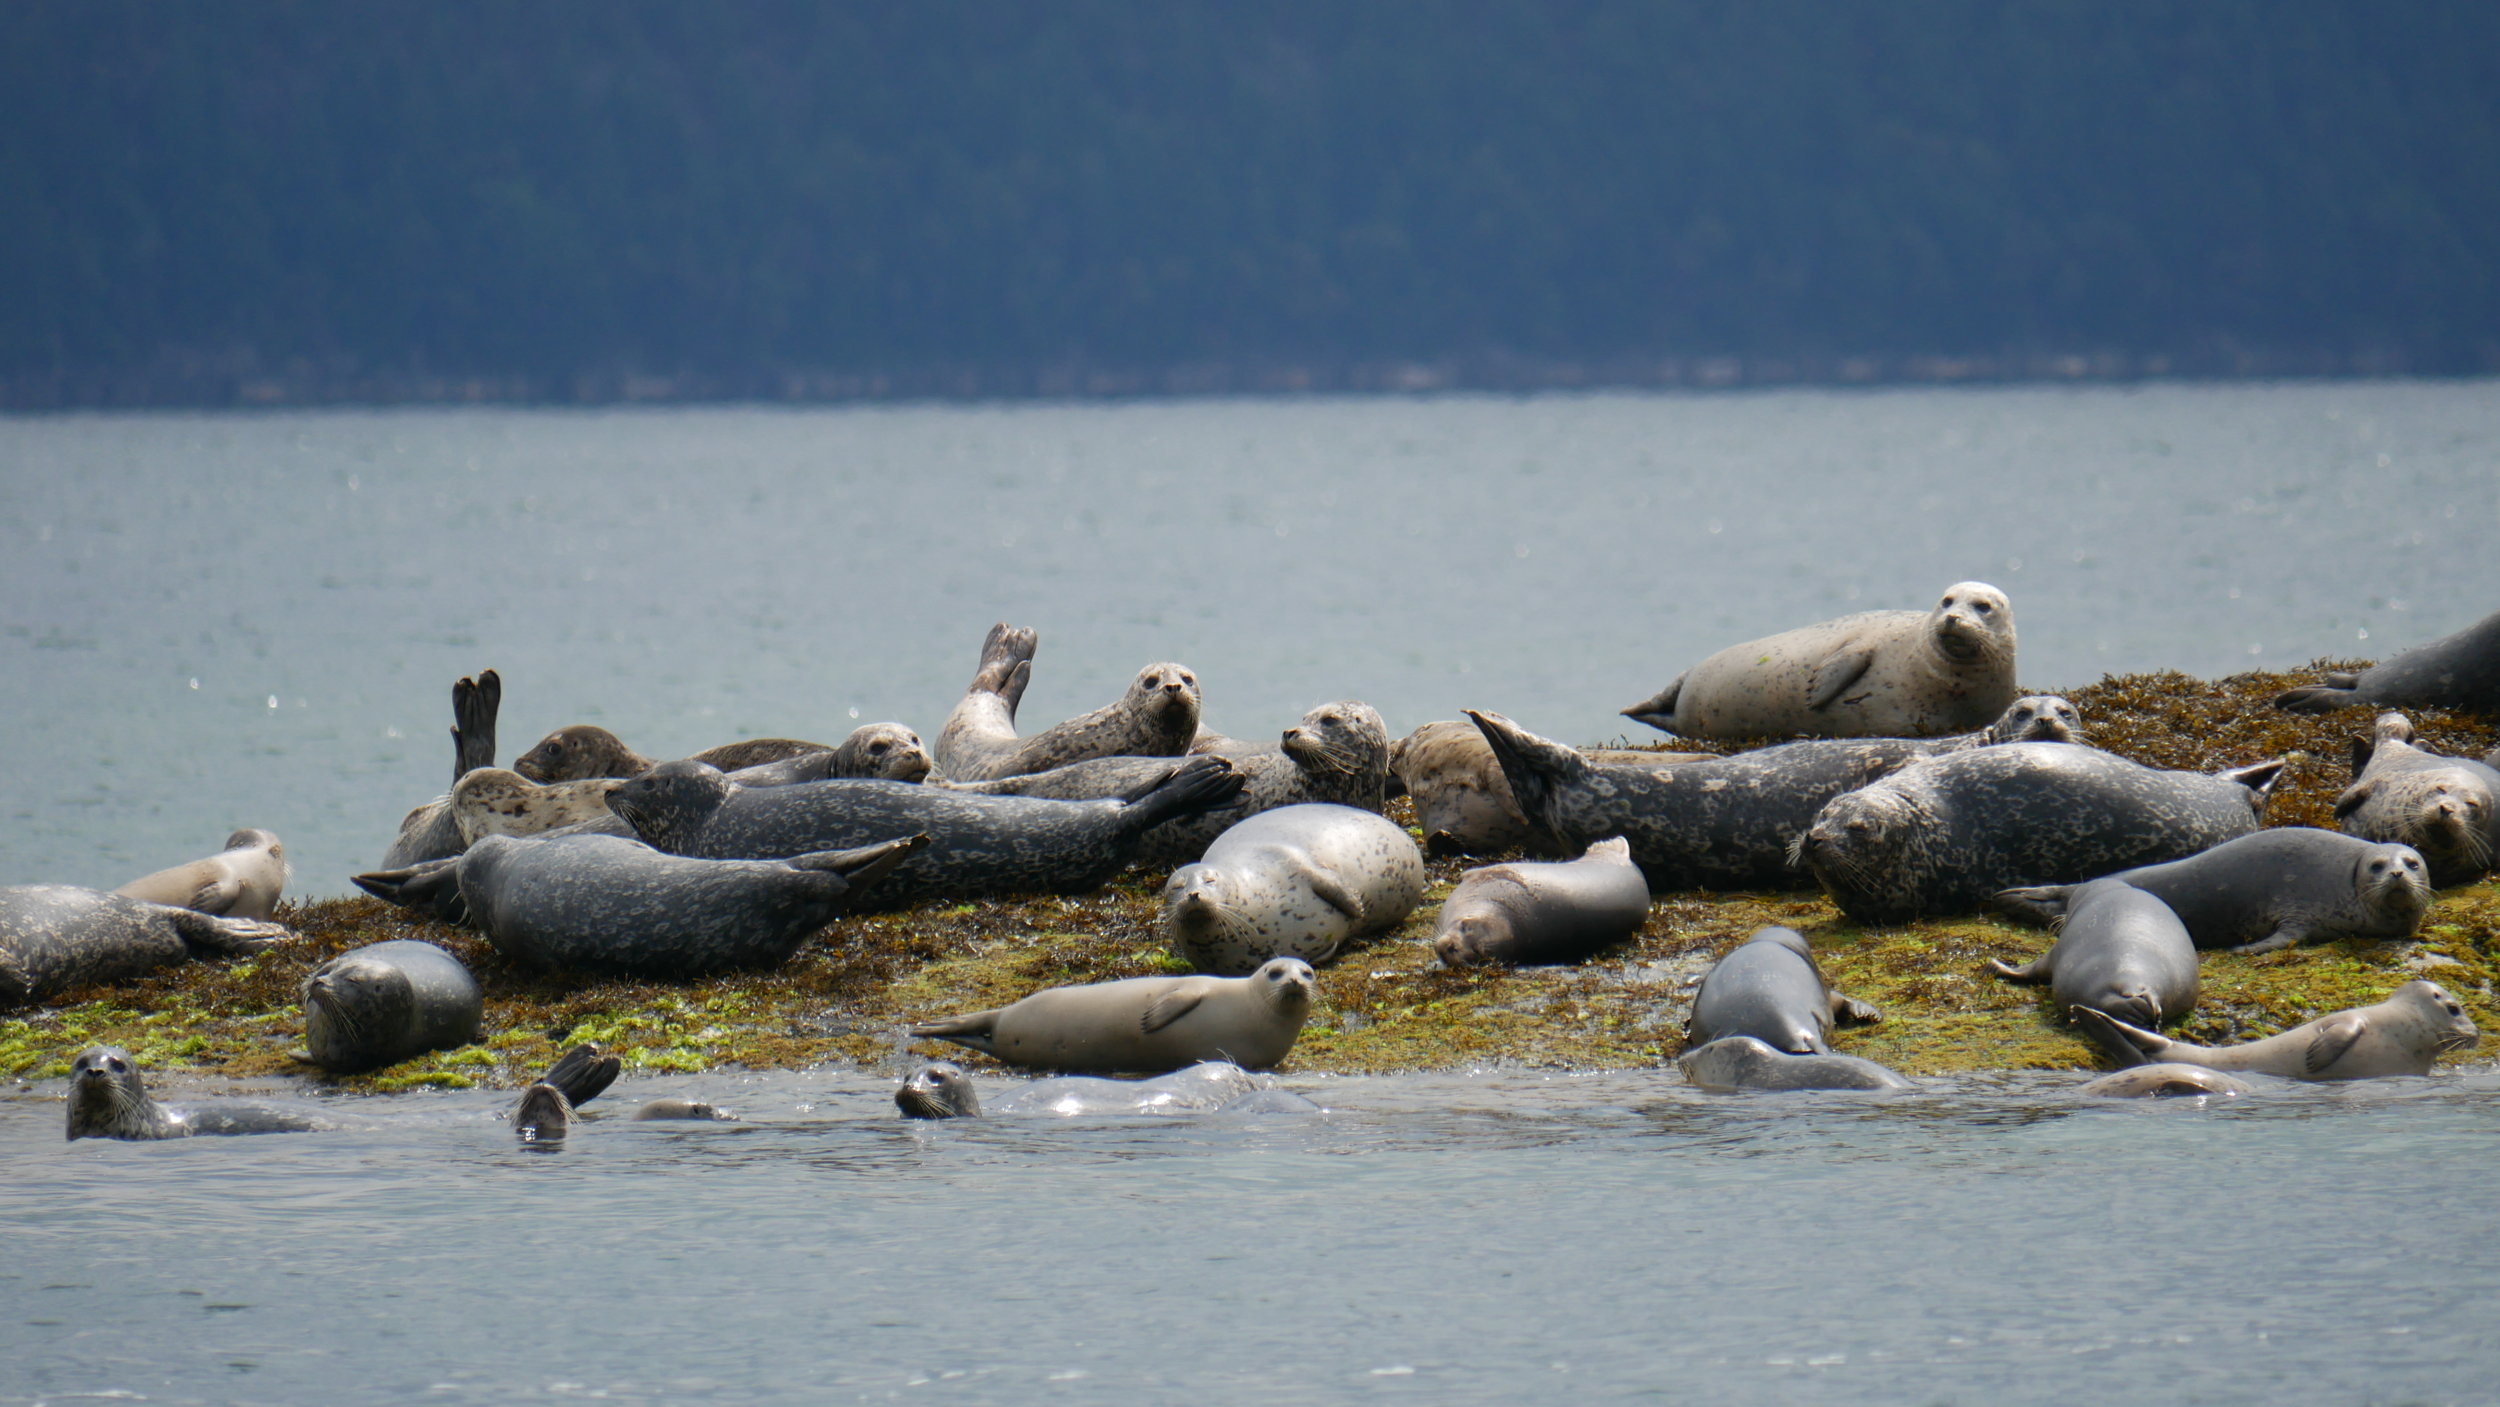 The harbour seals were watching us! Photo by Val Watson.